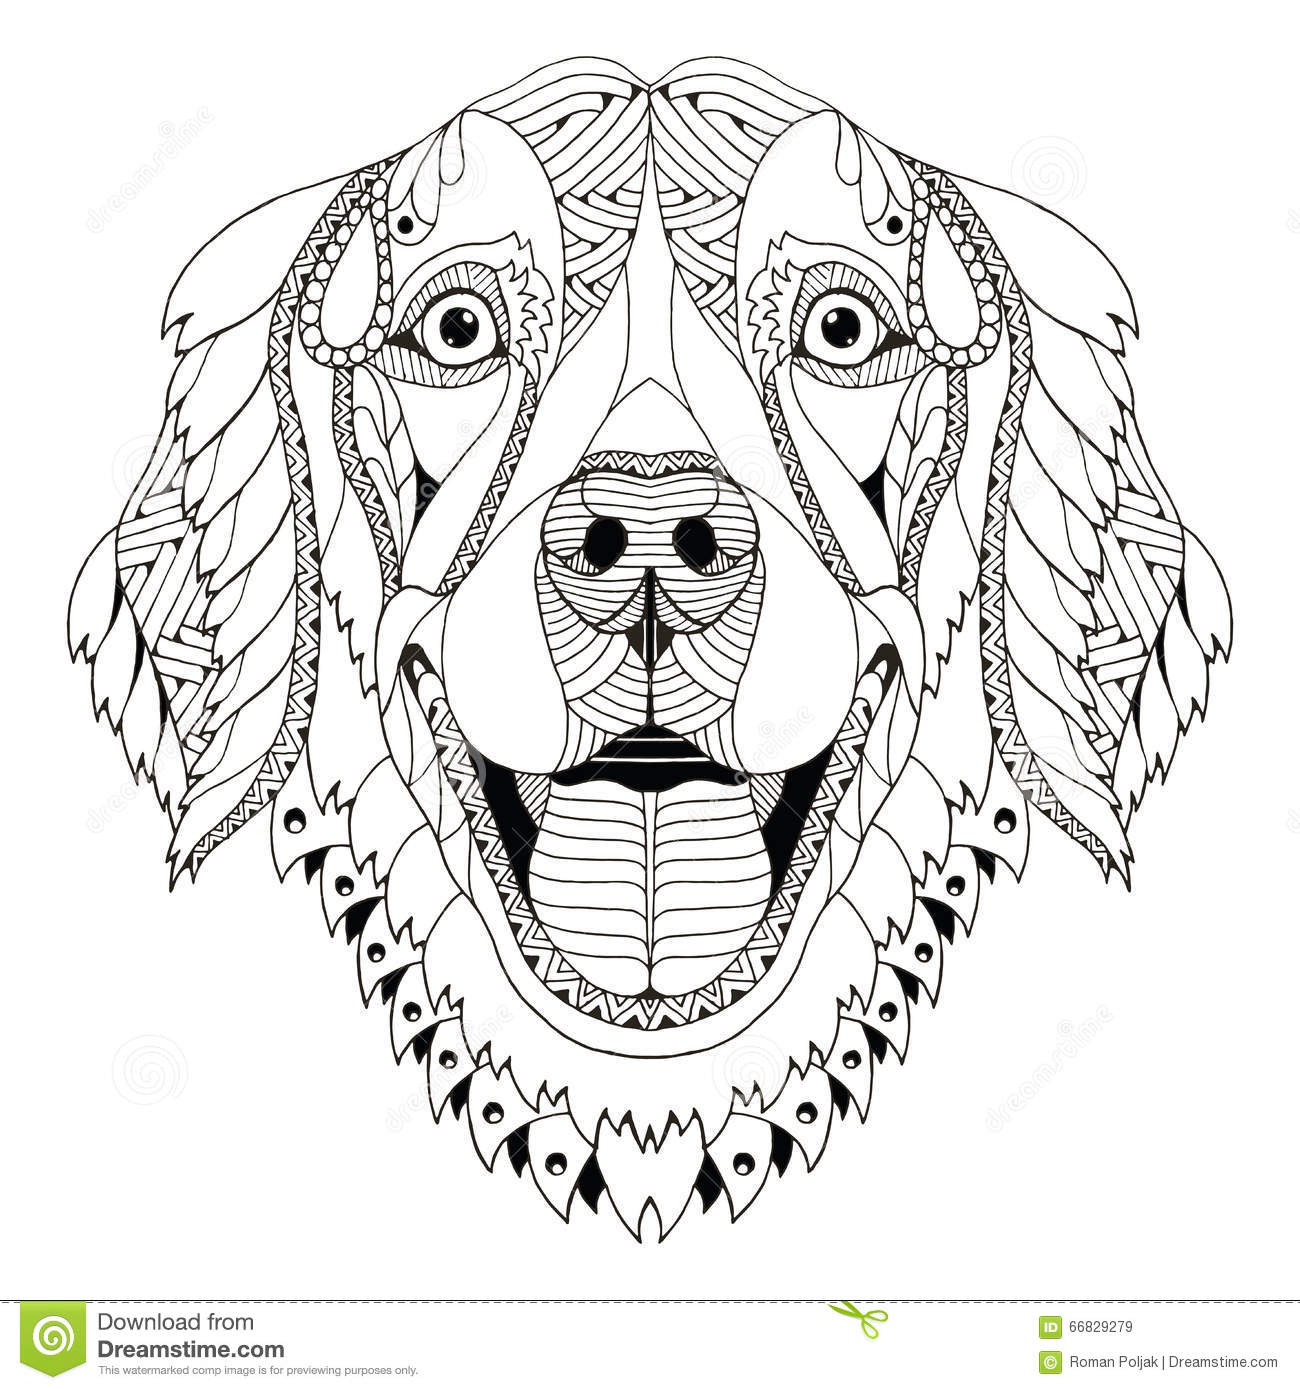 Golden Retriever Dog Zentangle Stylized Head Freehand